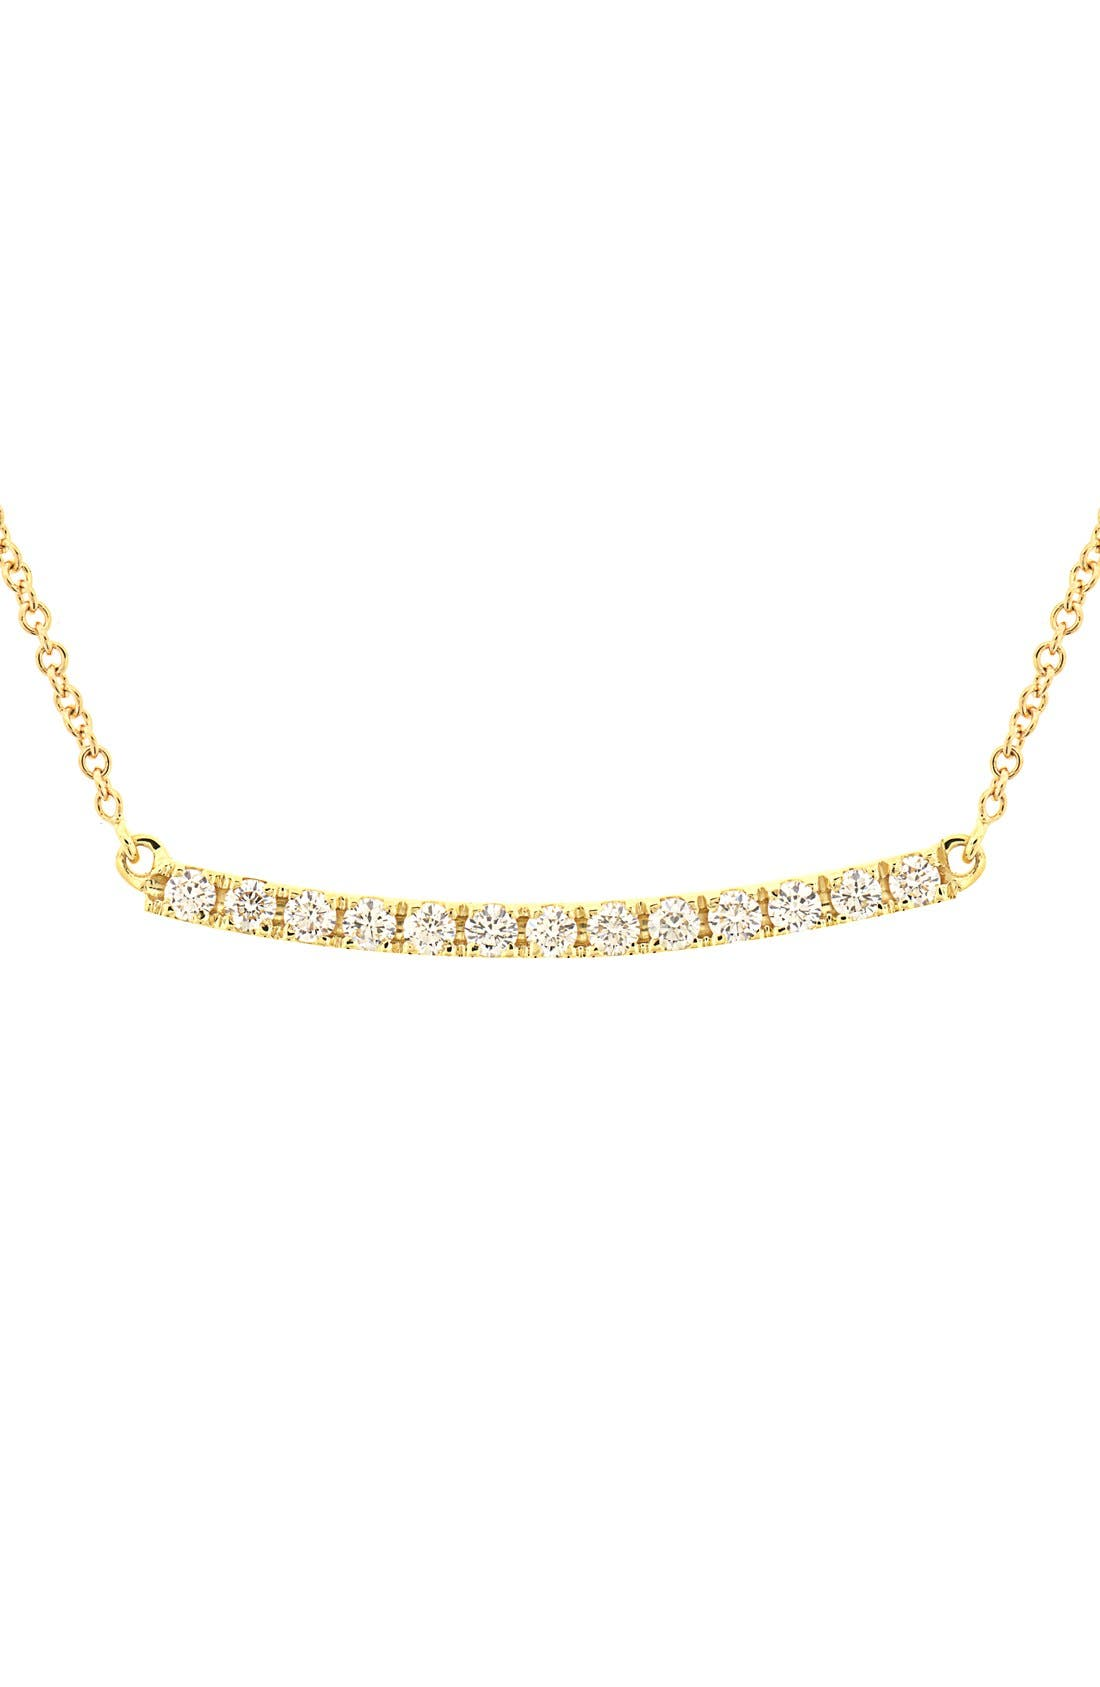 BONY LEVY 'Stick' Pavé Diamond Bar Necklace